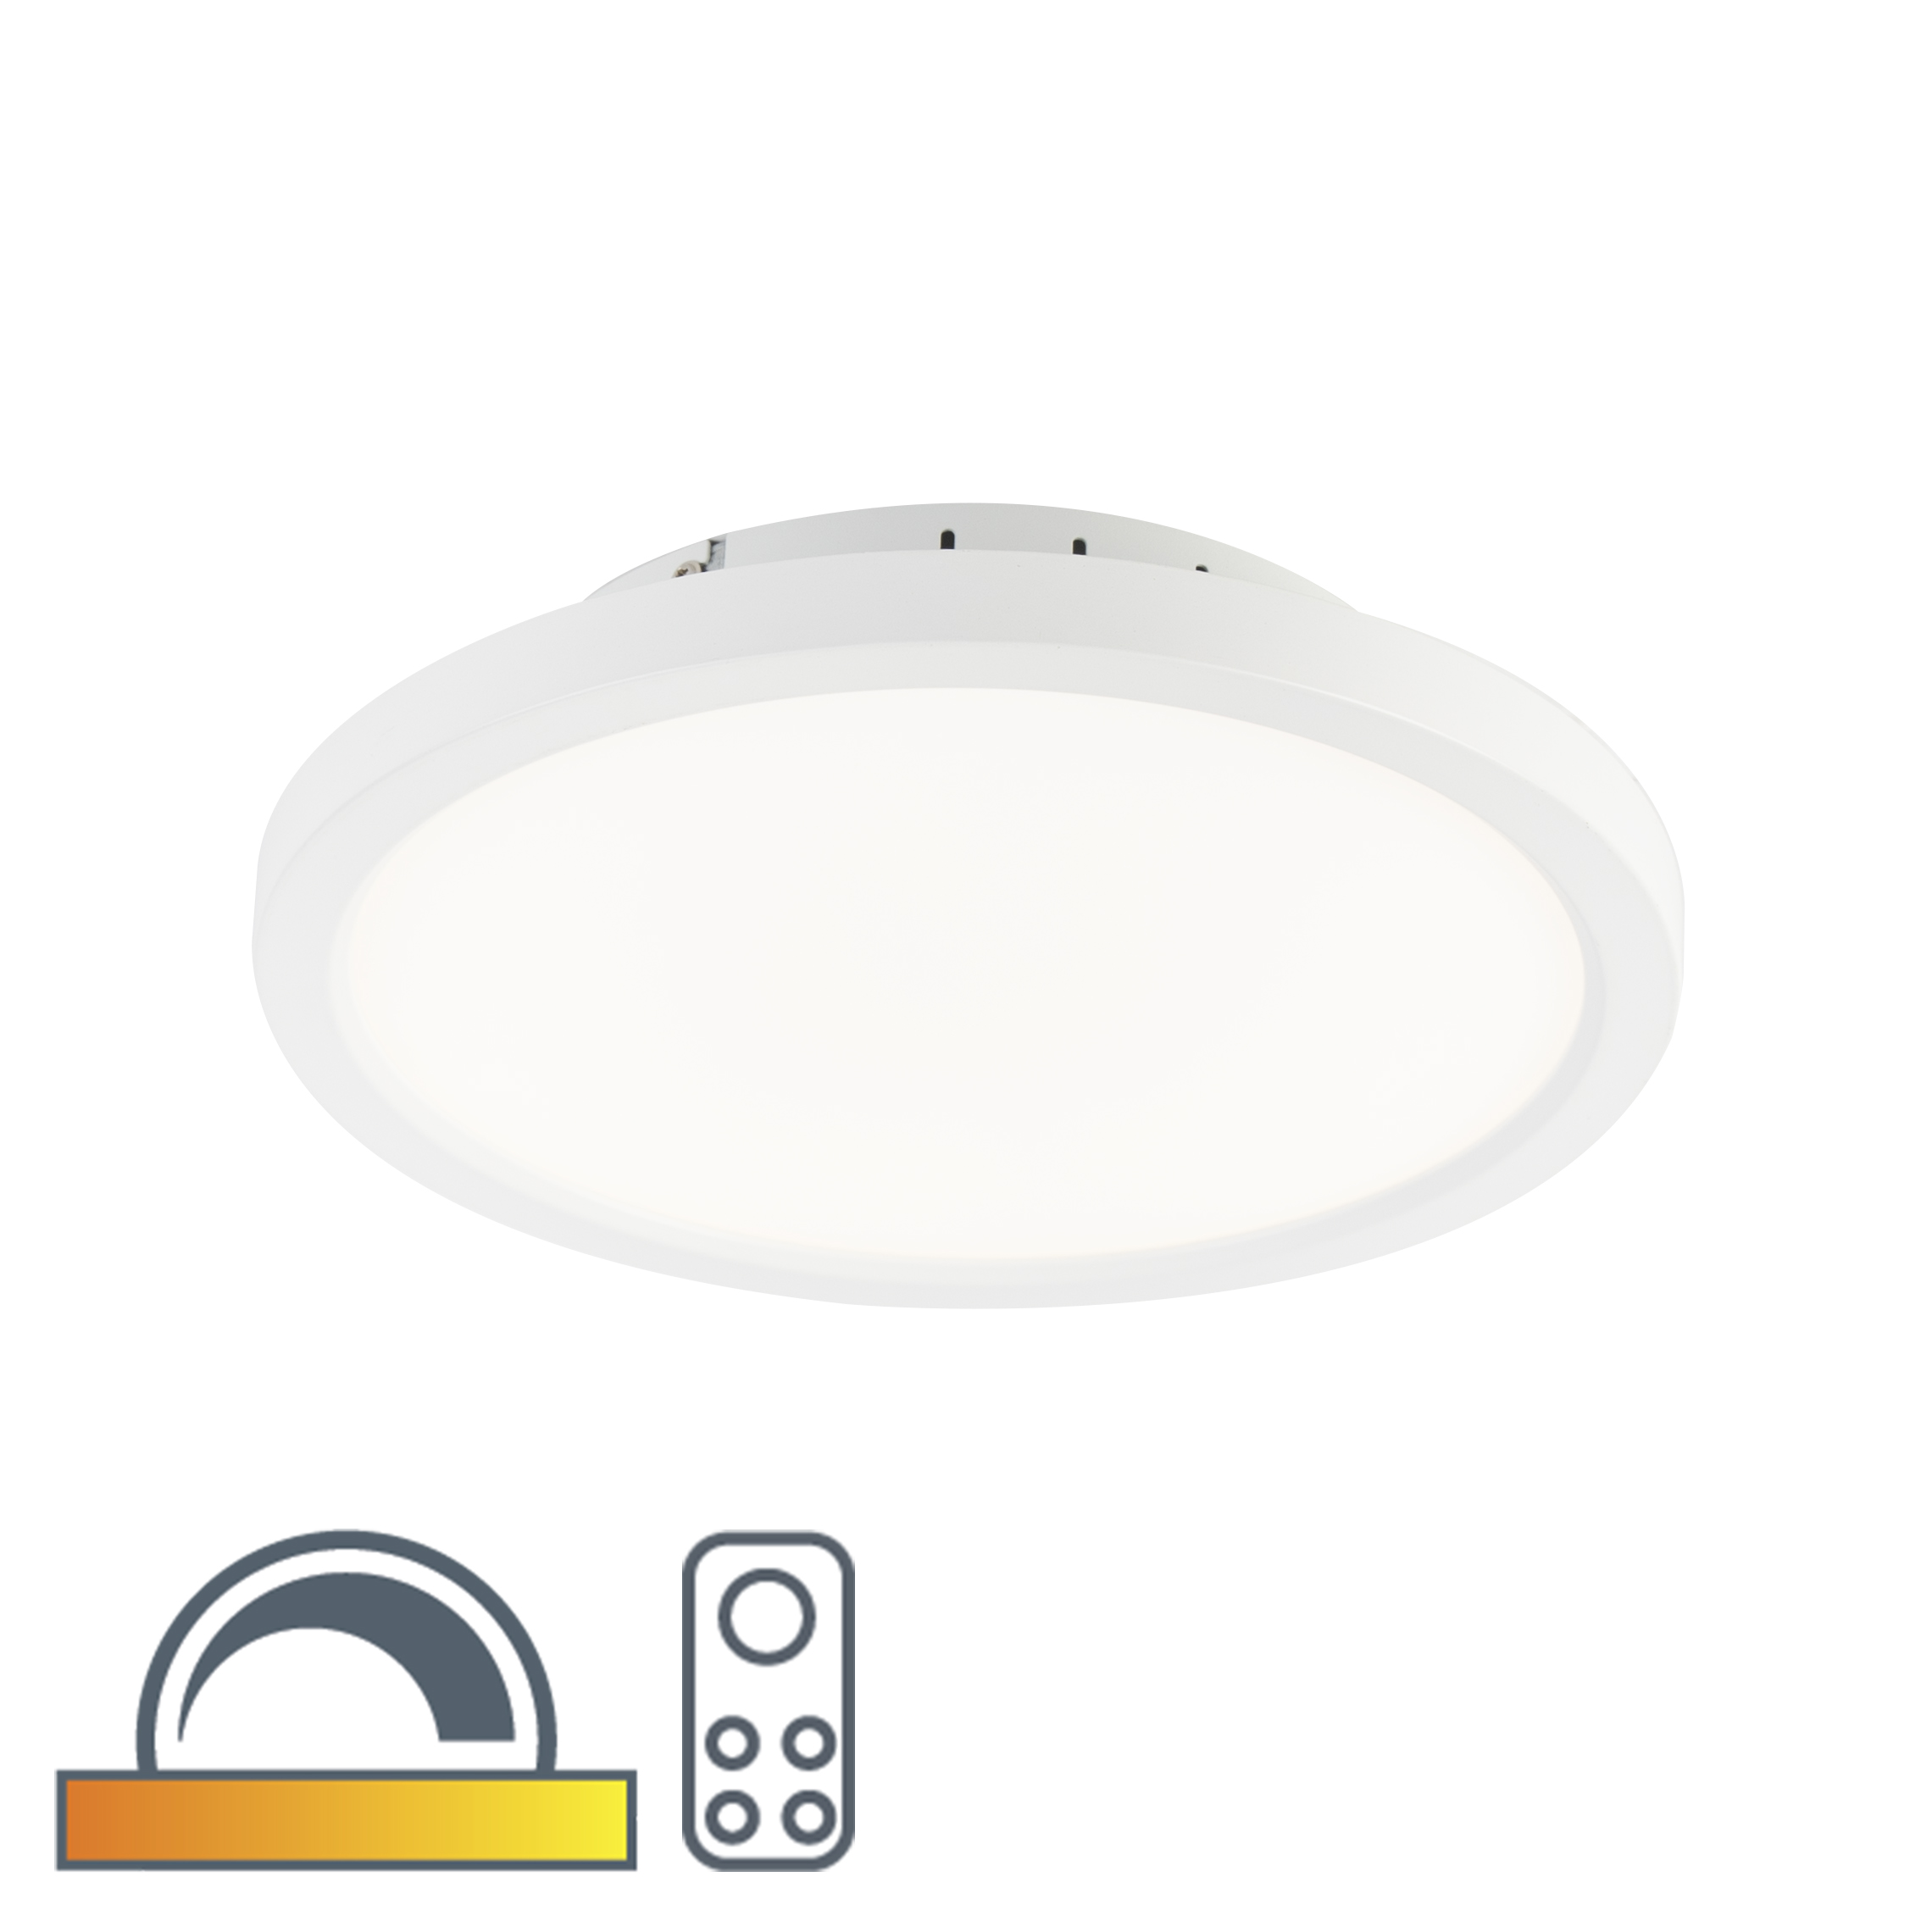 Moderne ronde plafonni�re wit 30cm incl. LED dim to warm - Flat